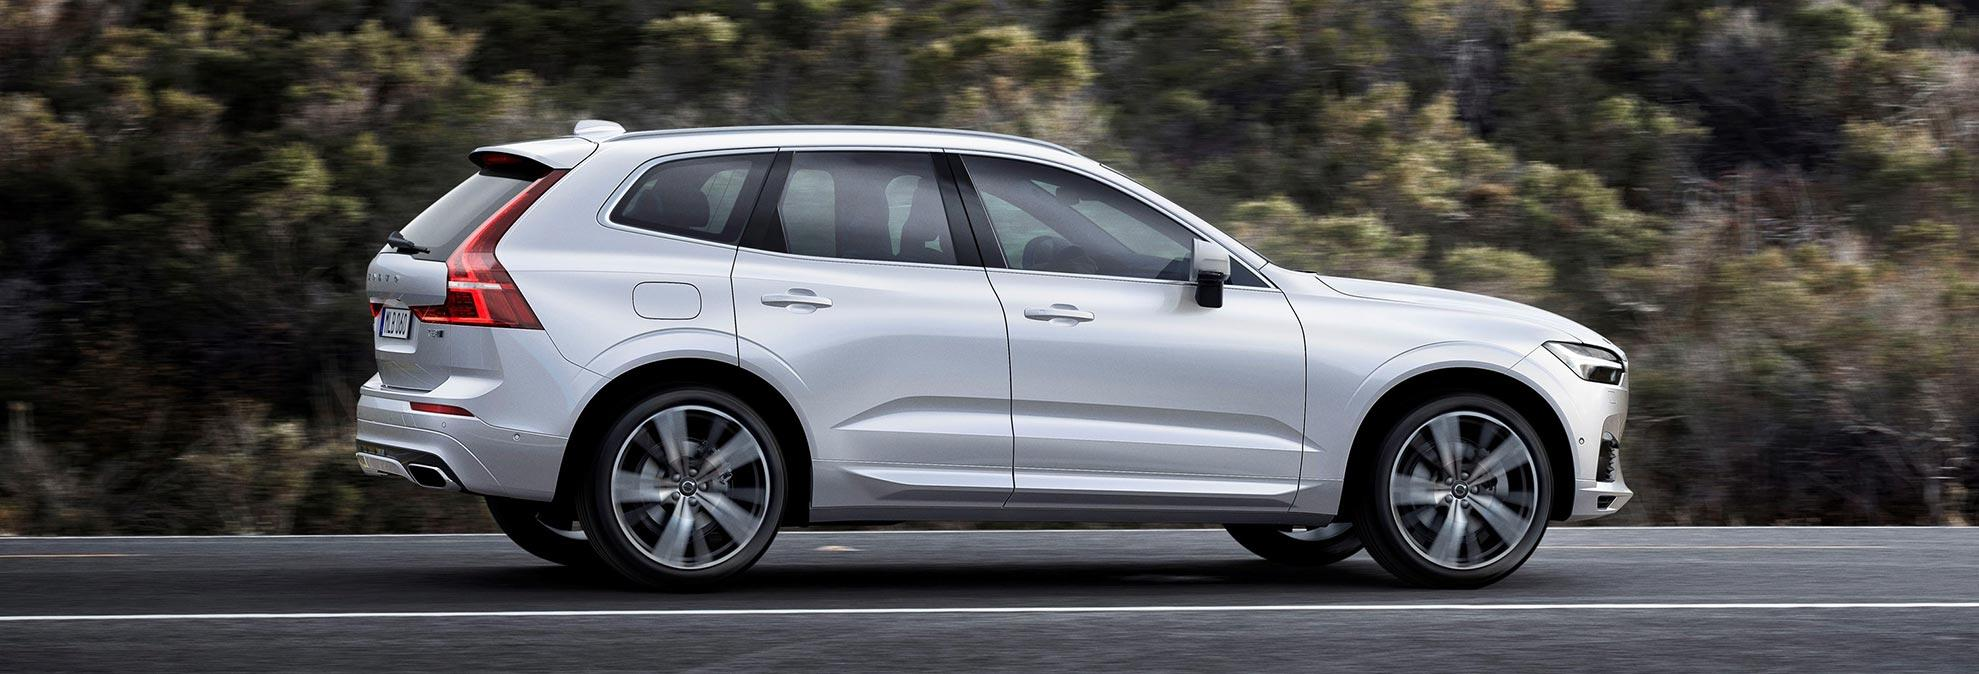 2018 volvo xc60 suv offers advanced safety gear. Black Bedroom Furniture Sets. Home Design Ideas